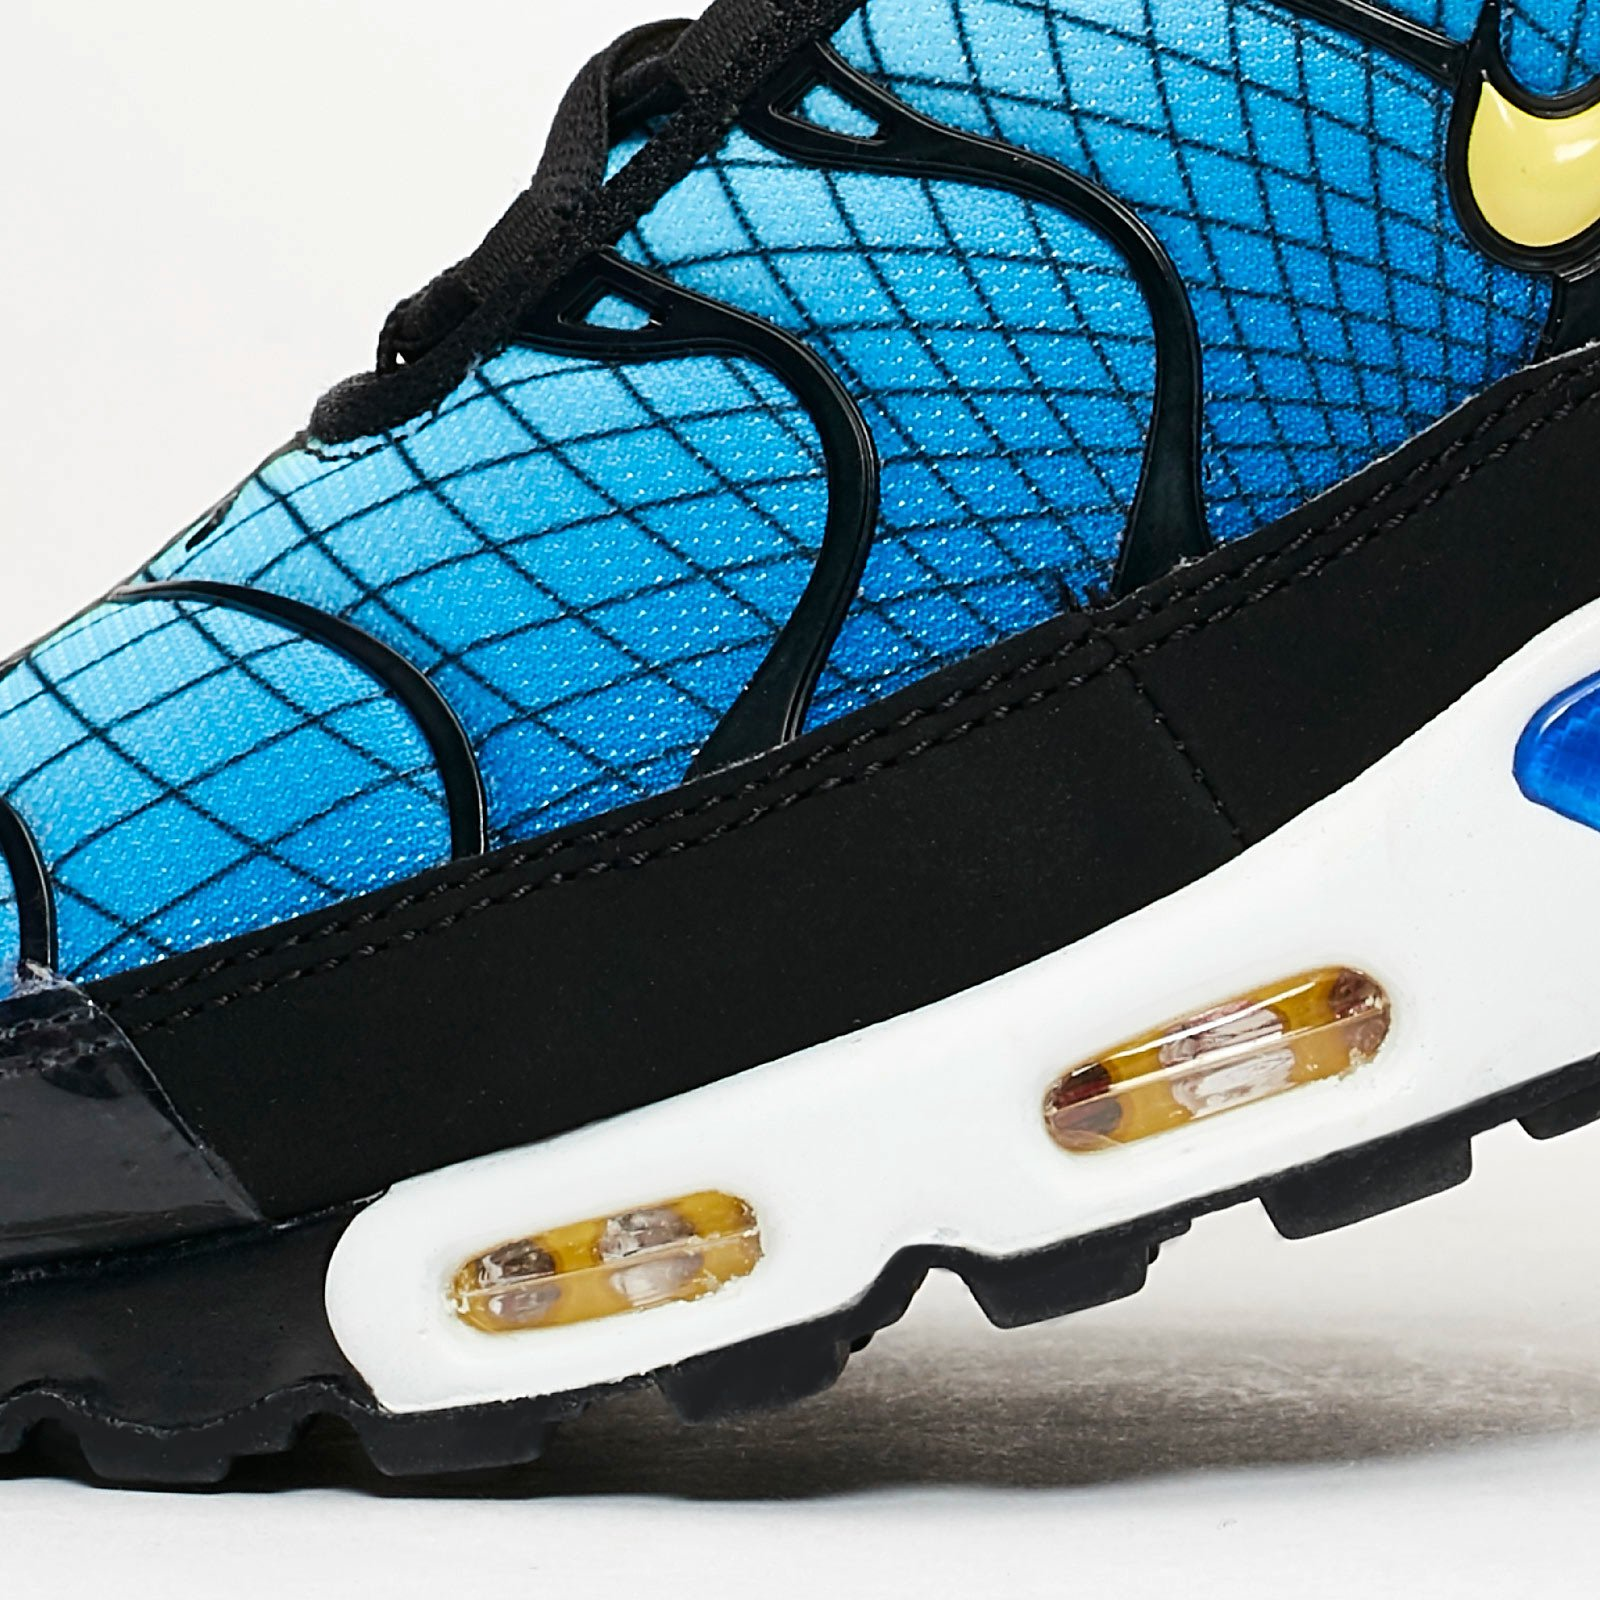 Nike Air Max Plus Av7021 001 Sneakersnstuff | sneakers